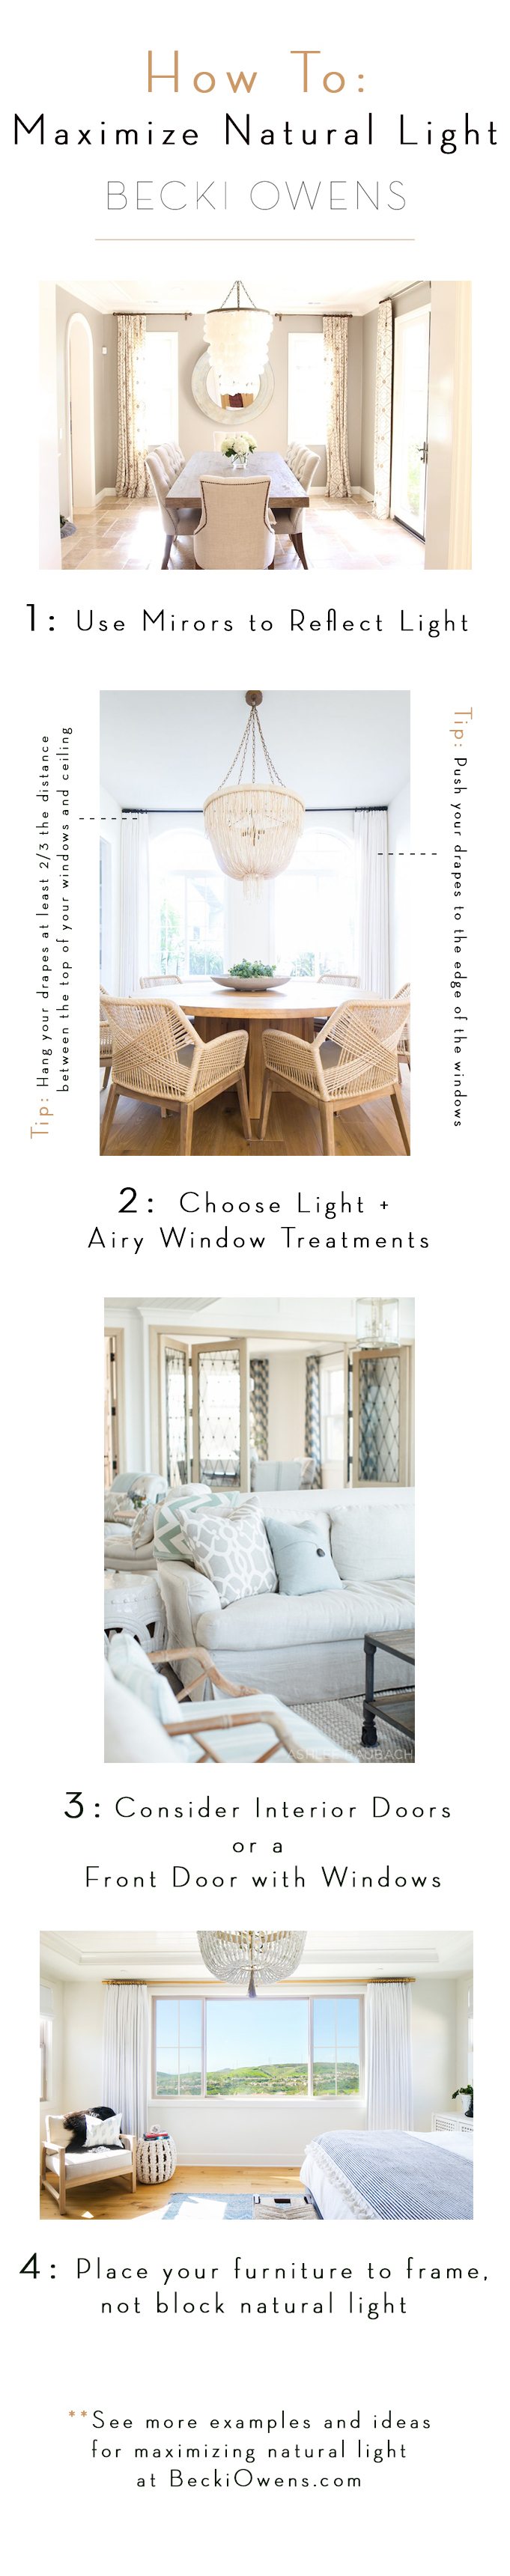 how to maximize natural light